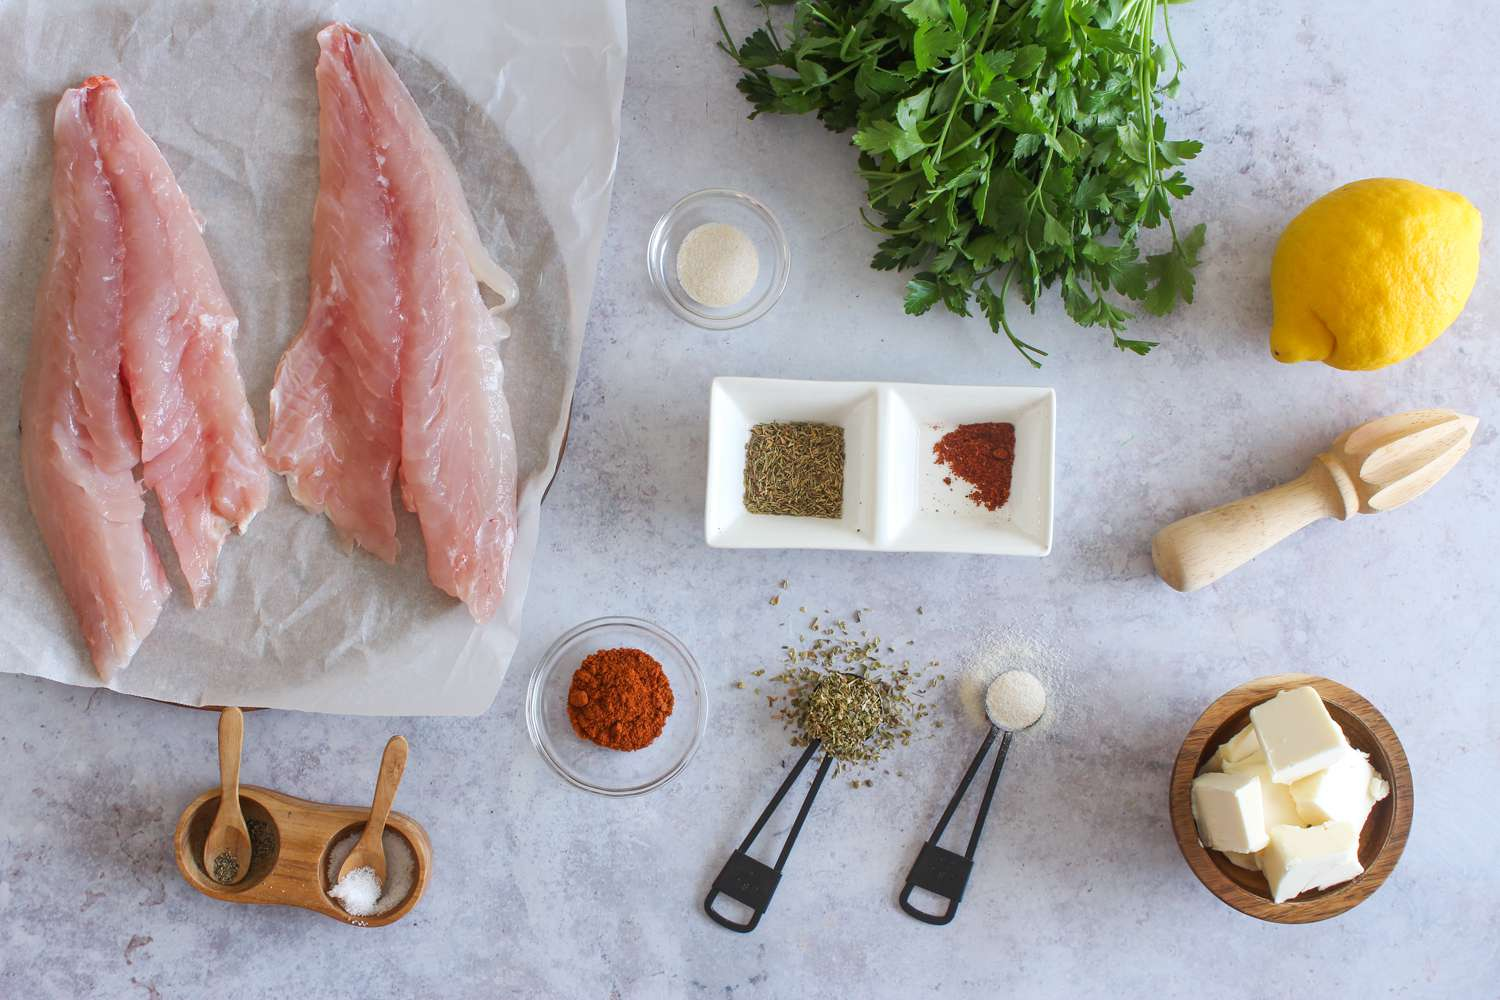 Ingredients for blackened red snapper